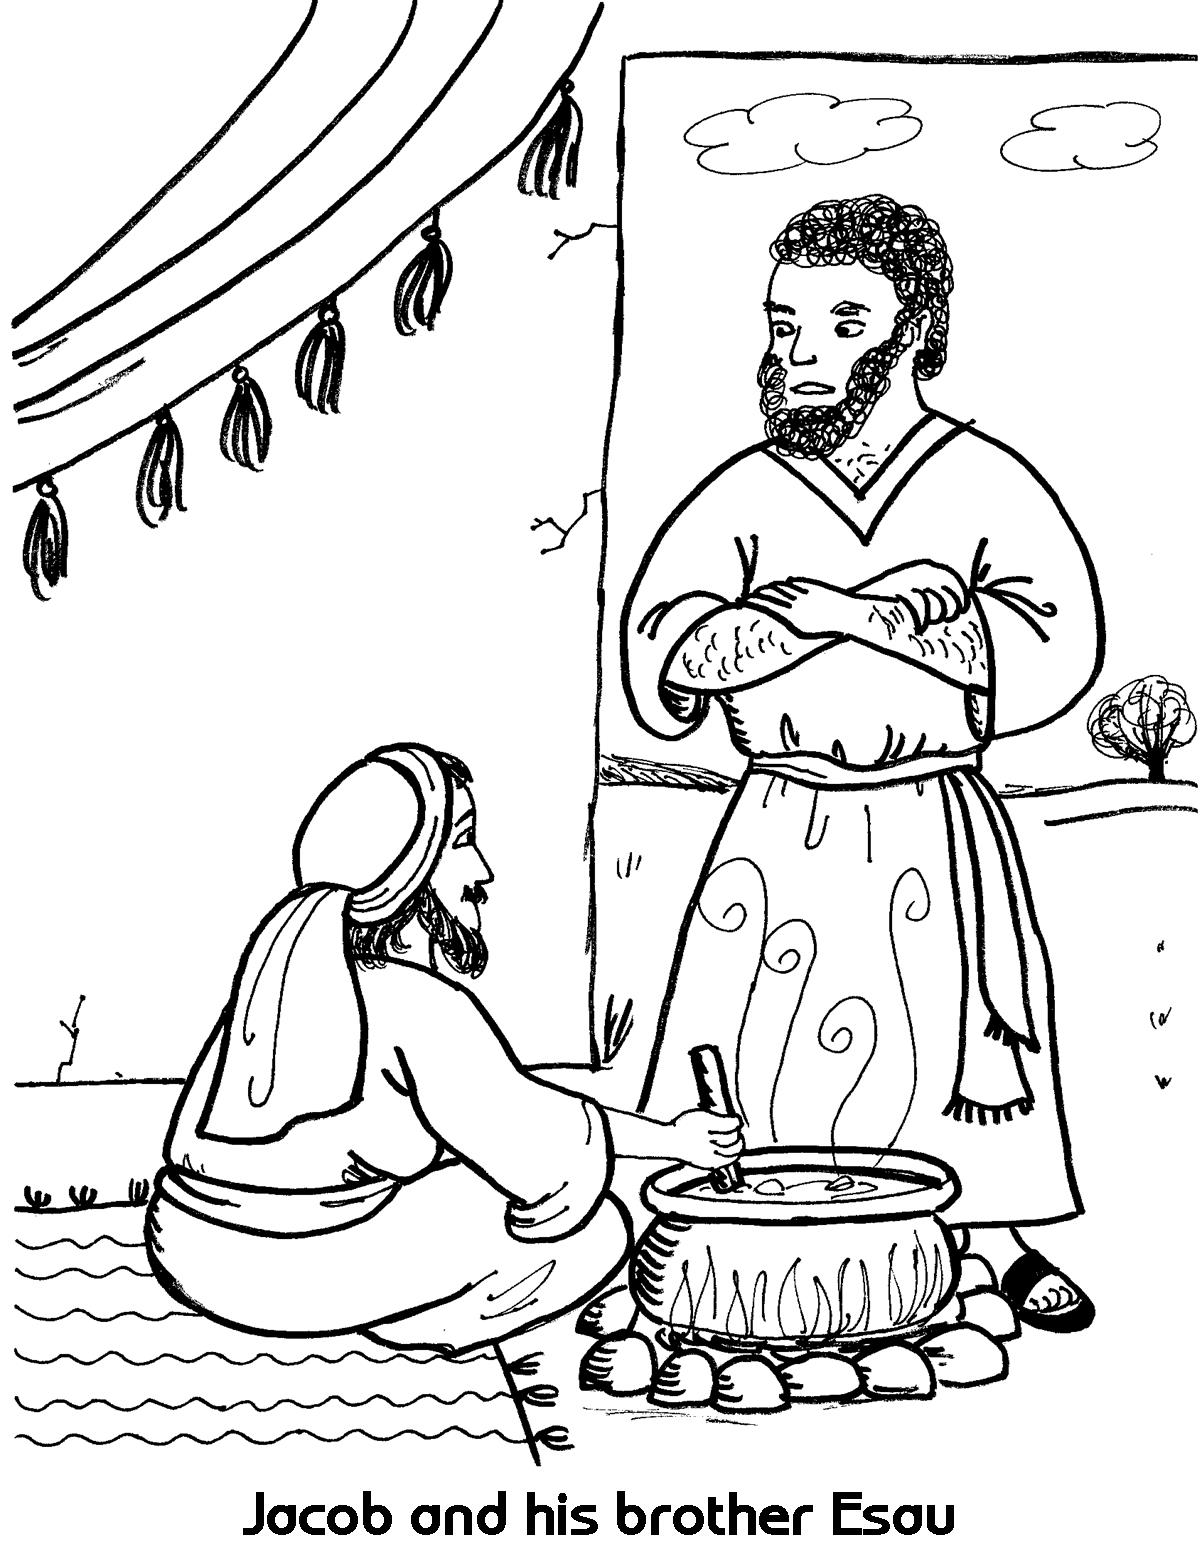 jacob meets esau coloring page esau